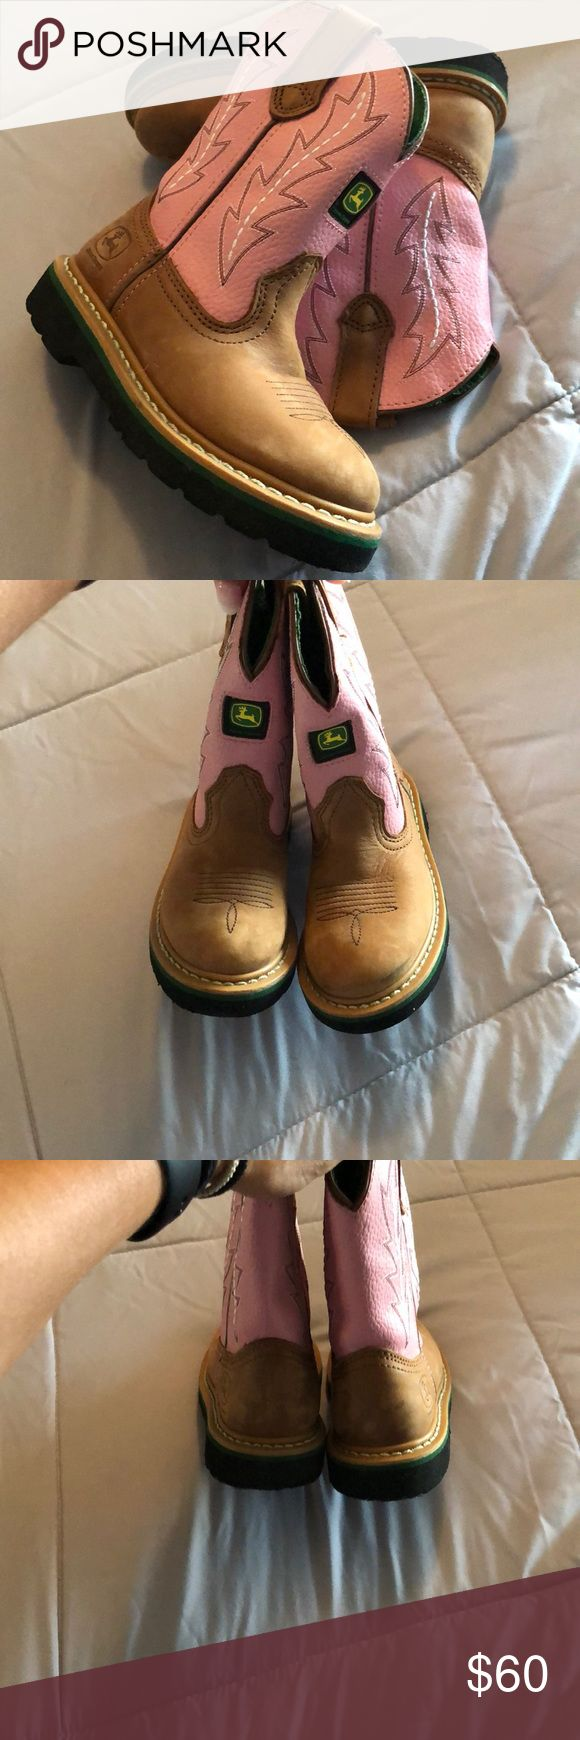 Kids John Deere Boots size 11.5 I bought these for my daughter's birthday whic…